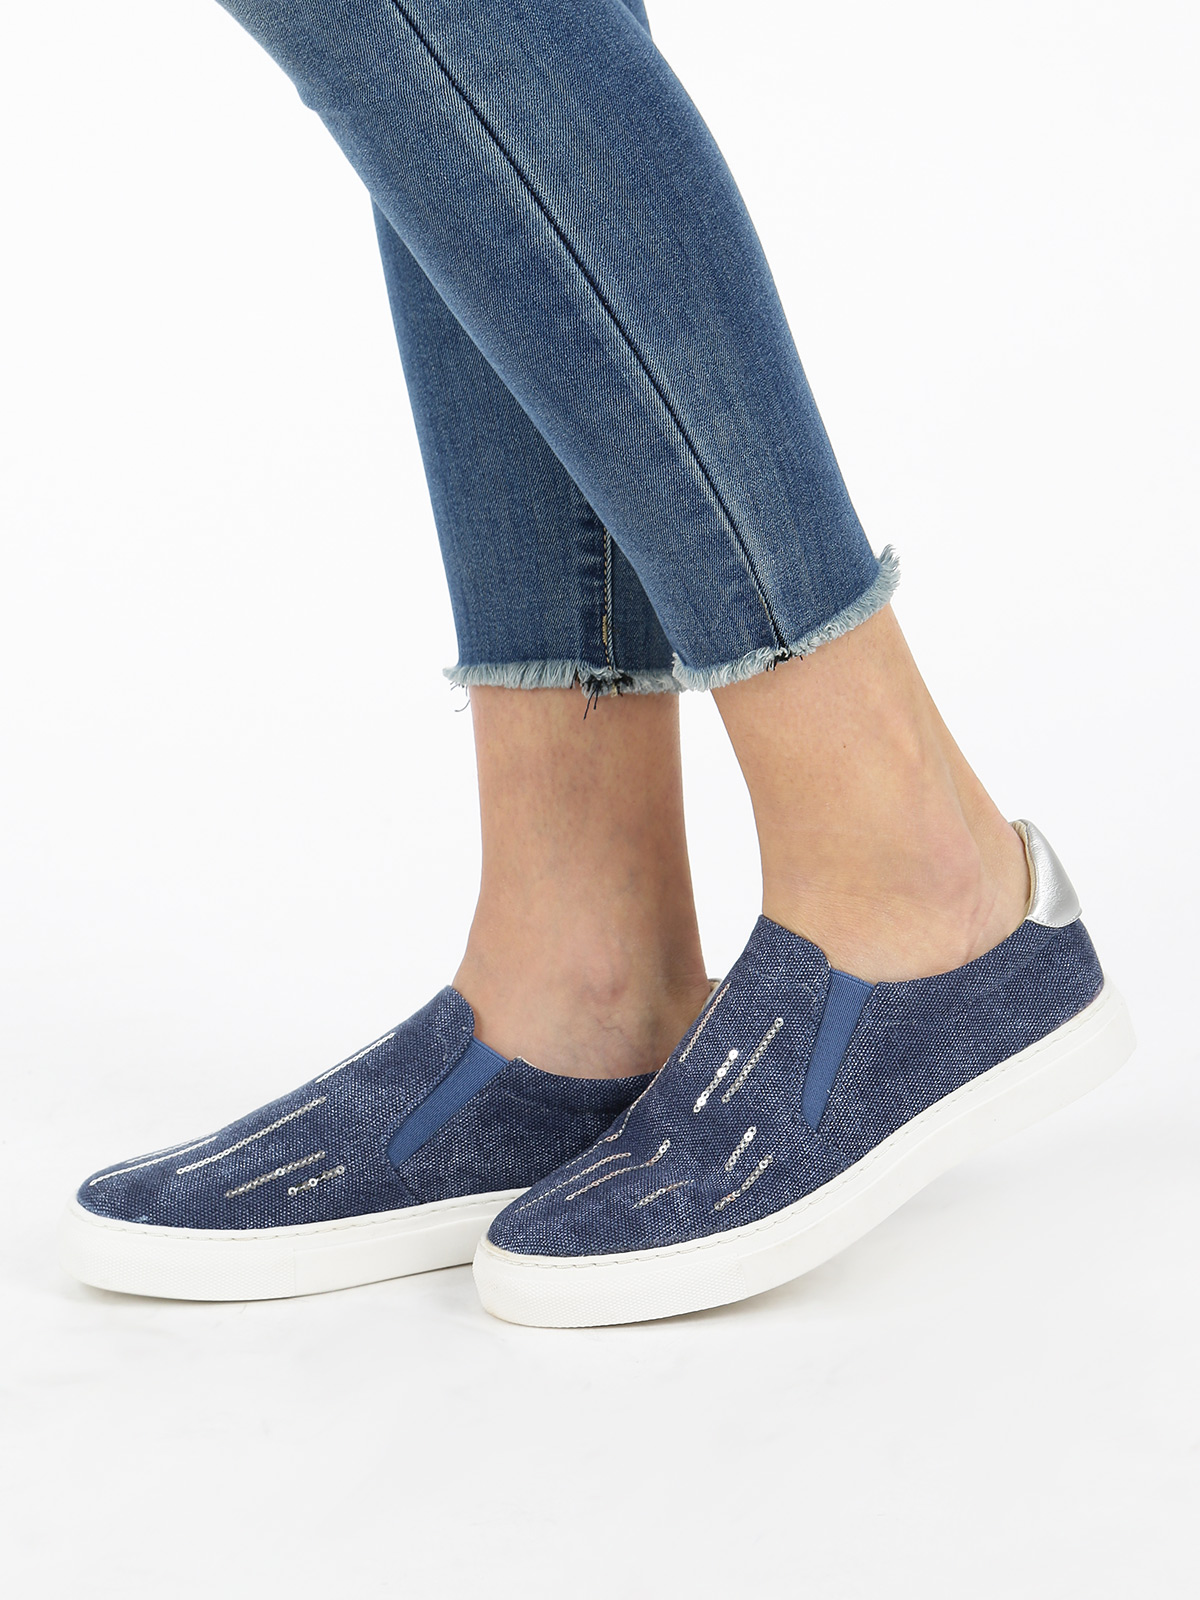 SOLADA Sneakers Effect Jeans